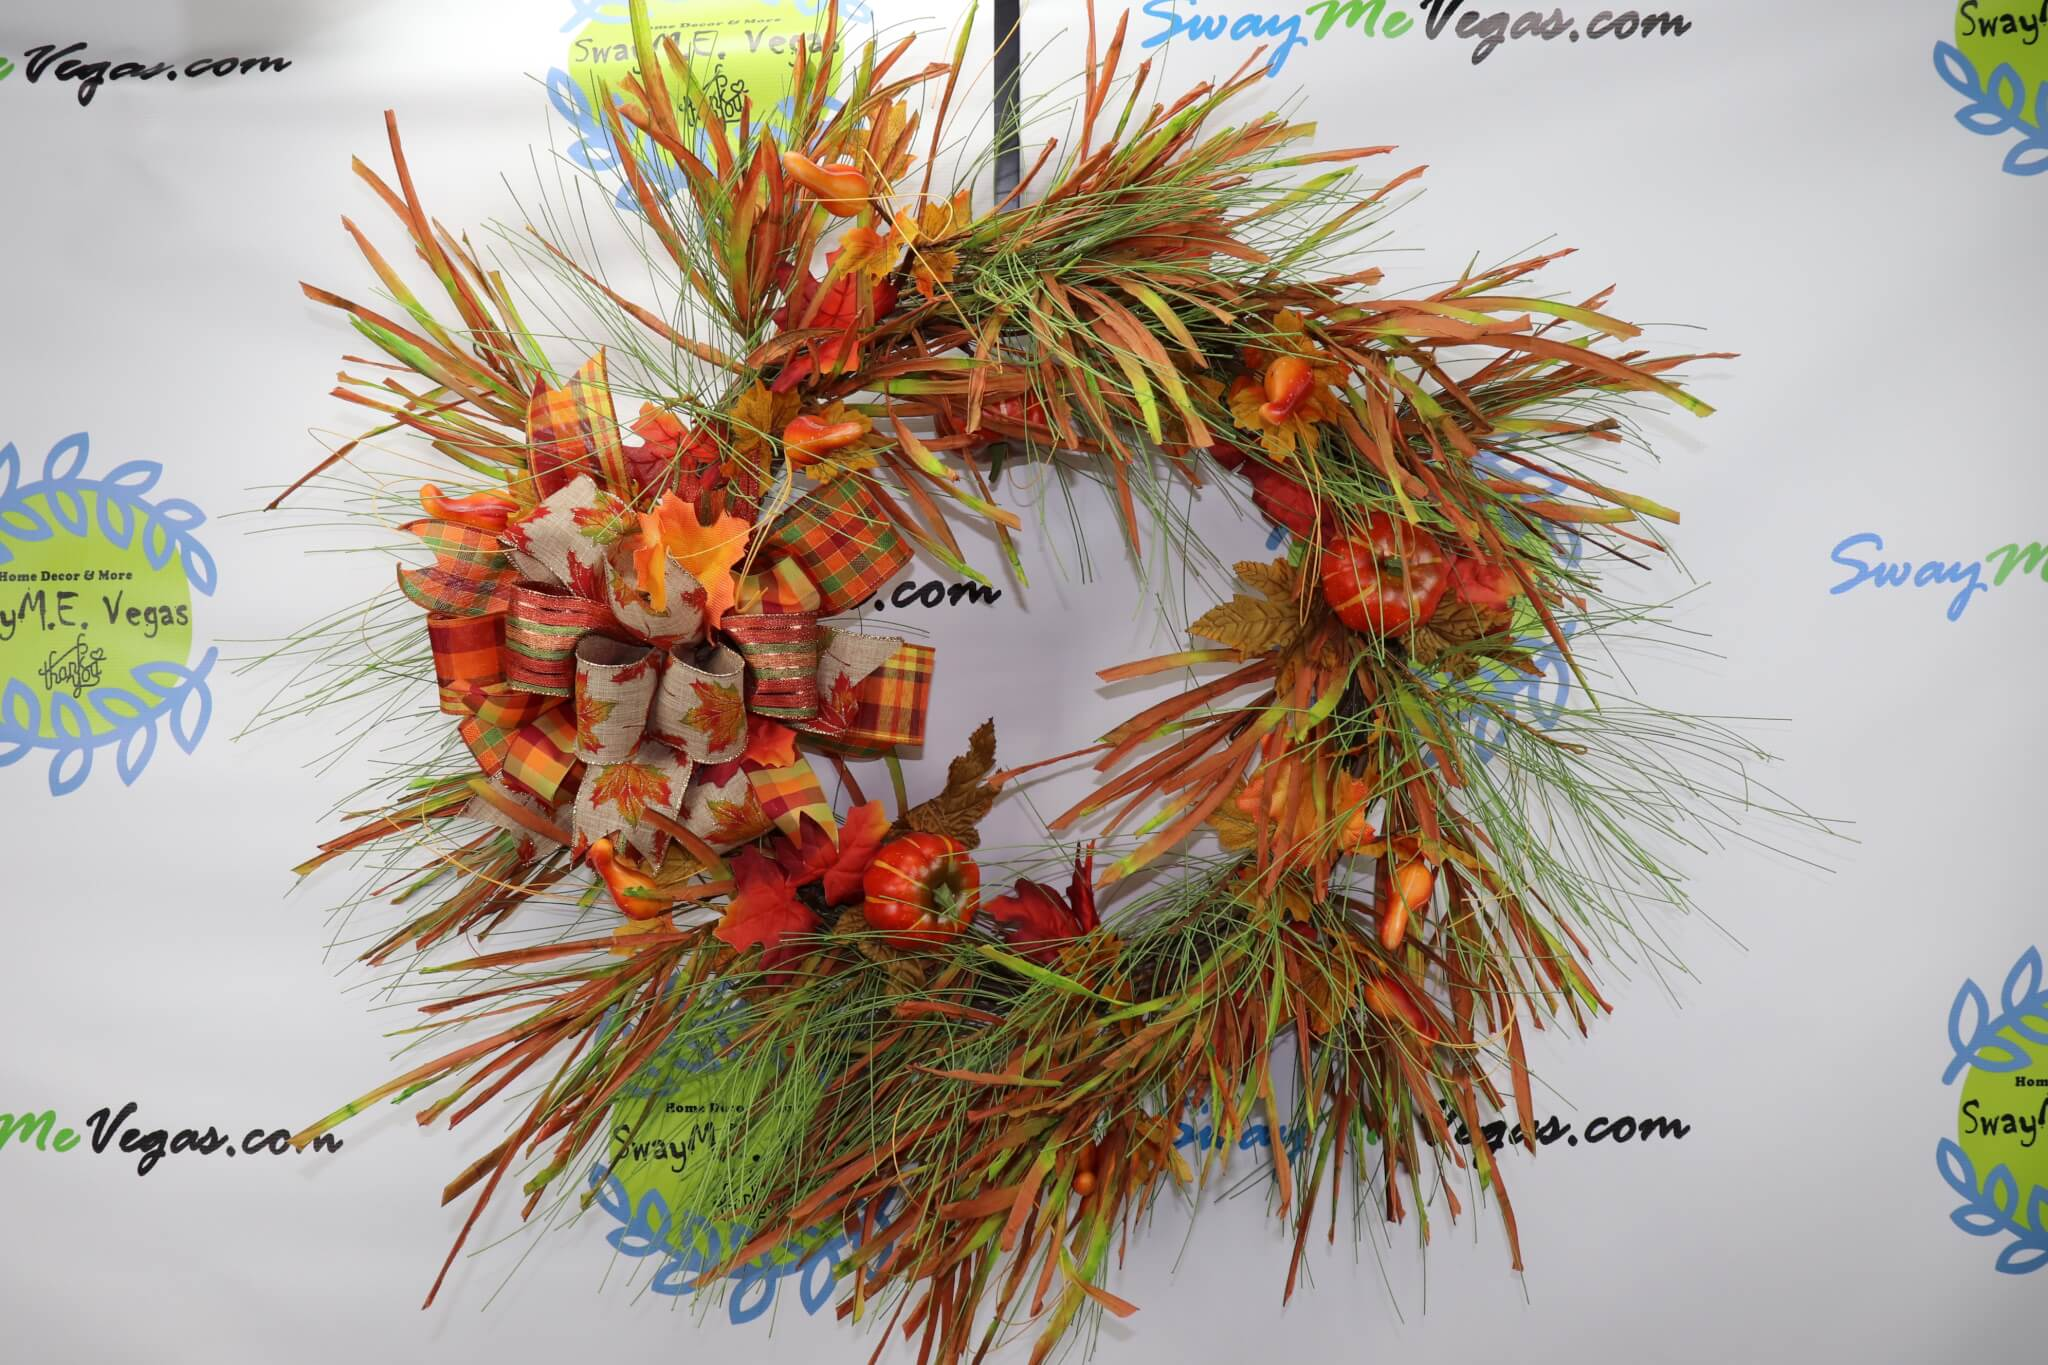 Fall-Pumpkin-XXL-Grapevine-Wreath-0-Copy Fall Pumpkin and Grass Wreath